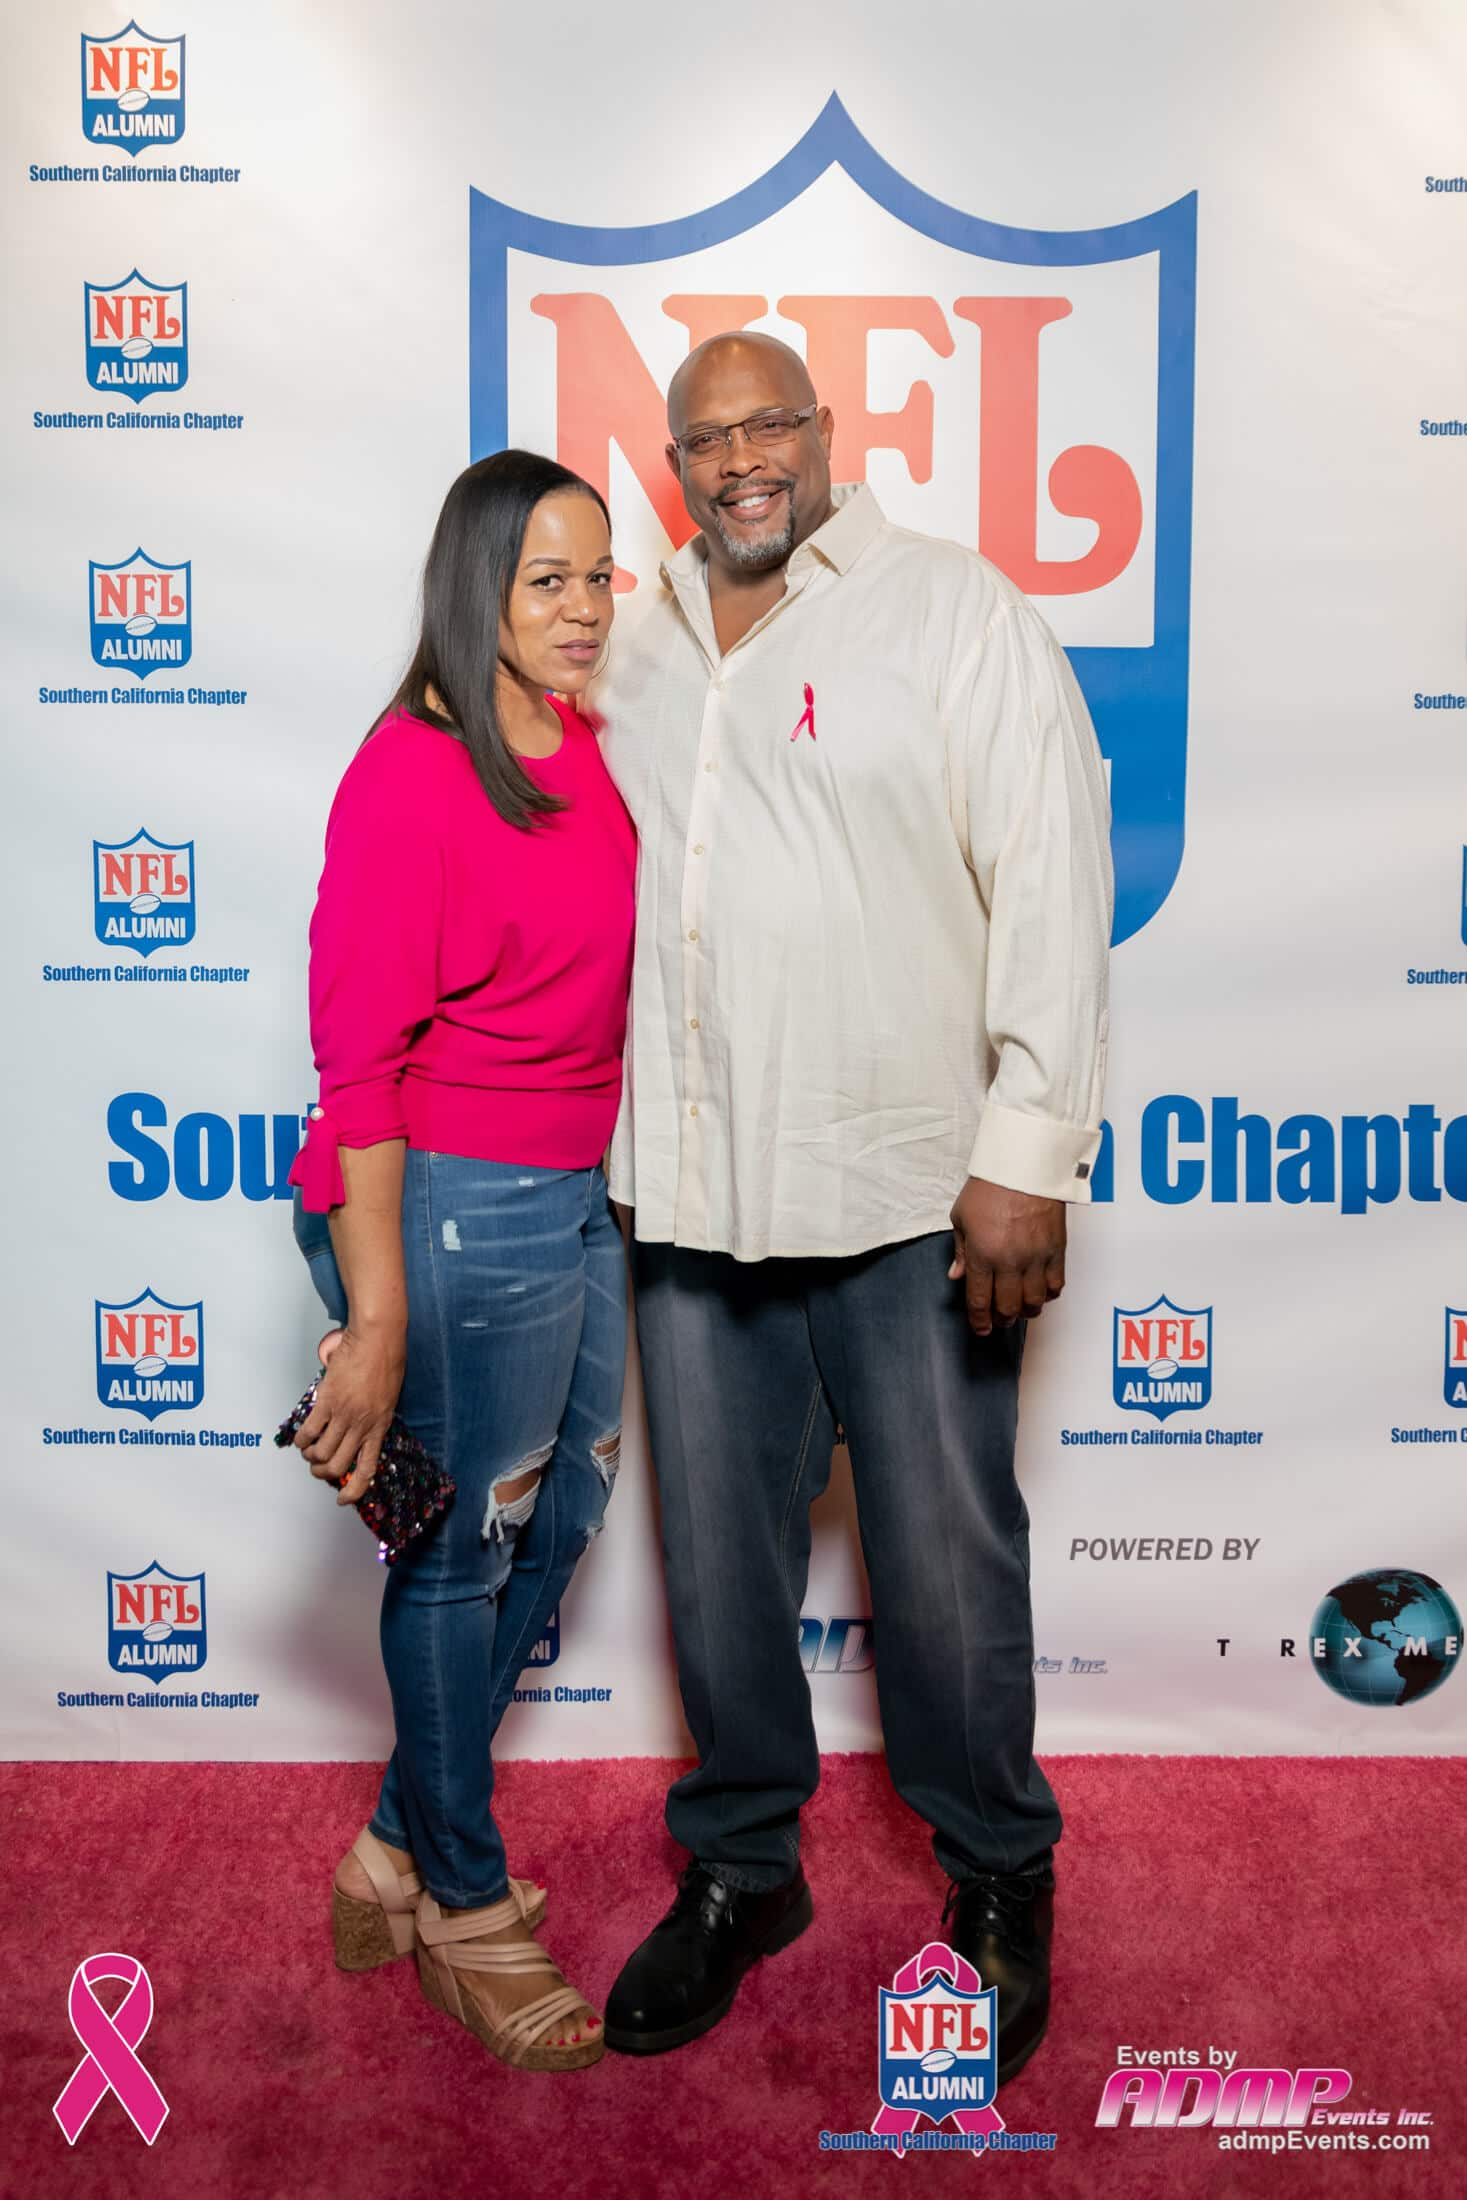 NFL Alumni SoCal Charity Event Series Breast Cancer Event 10-14-19-252